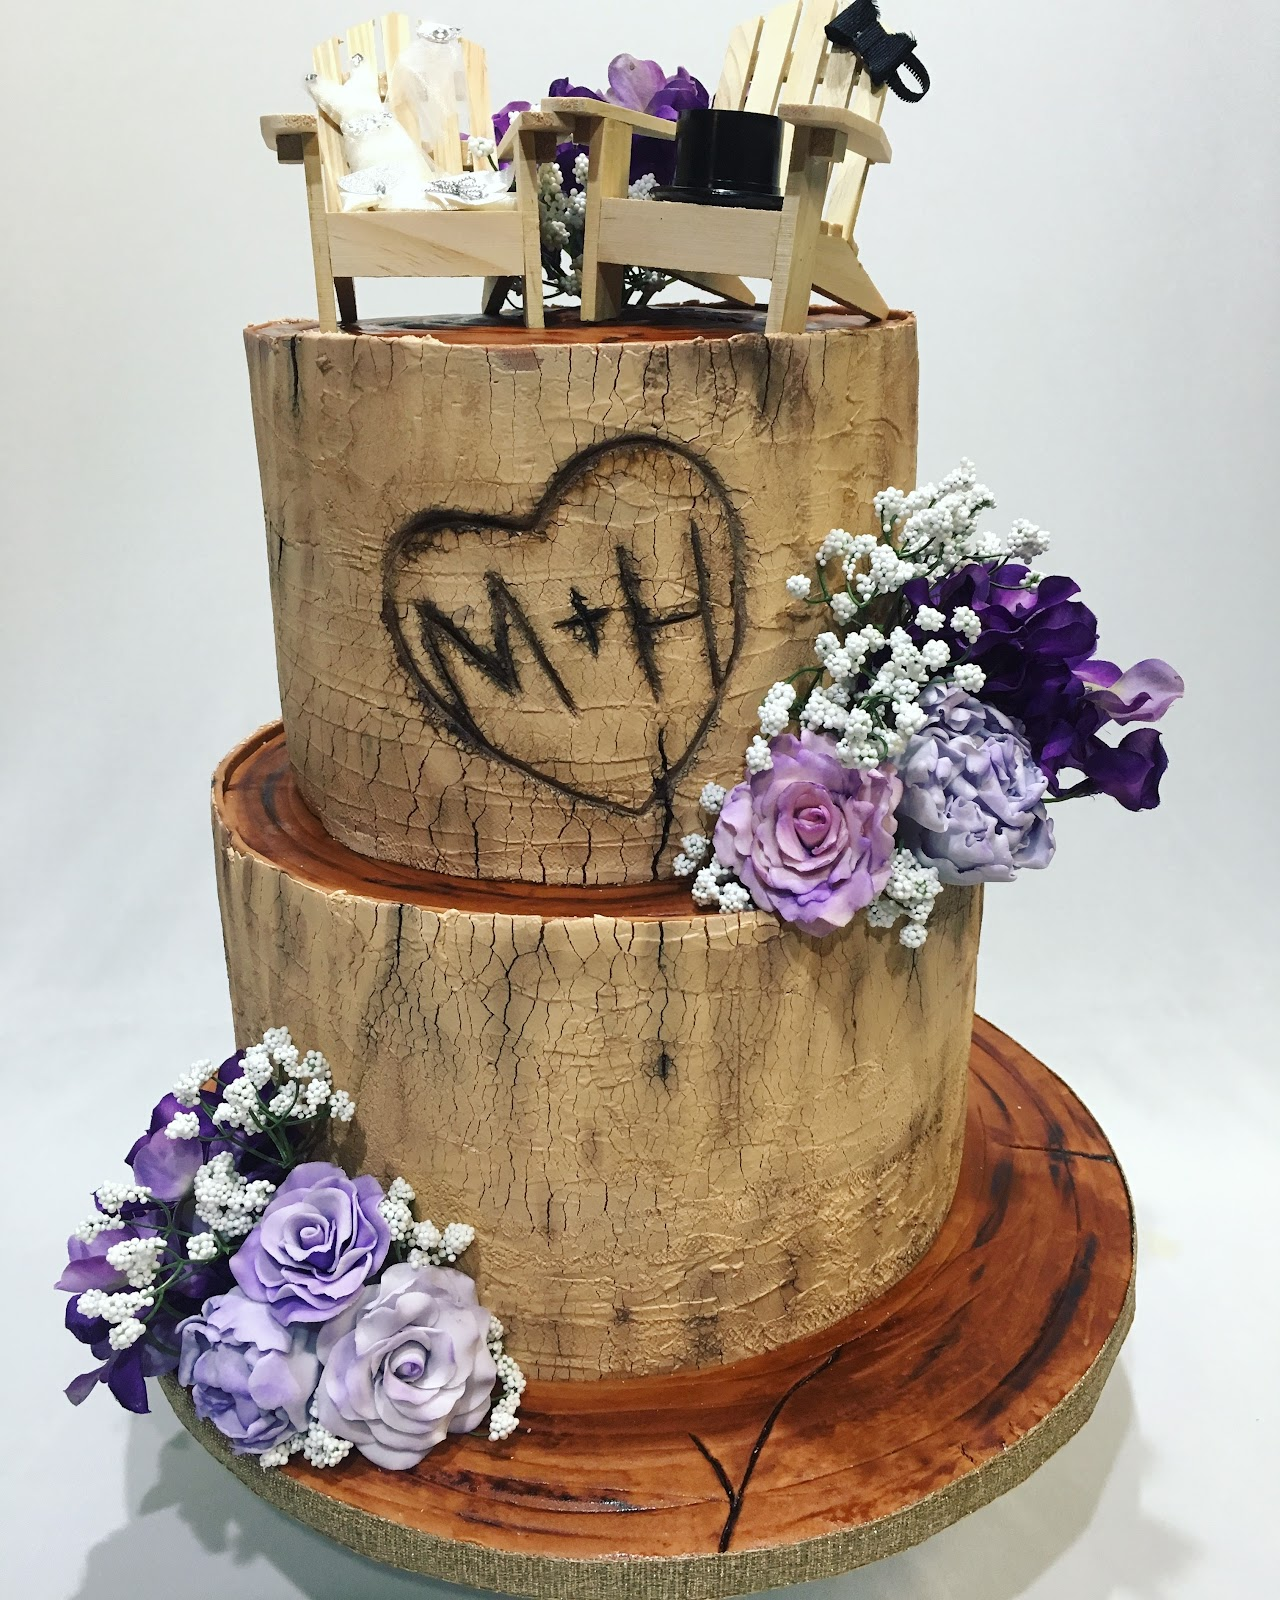 MyMoniCakes: Birch Wood Tree Wedding Cake With Fondant Flowers